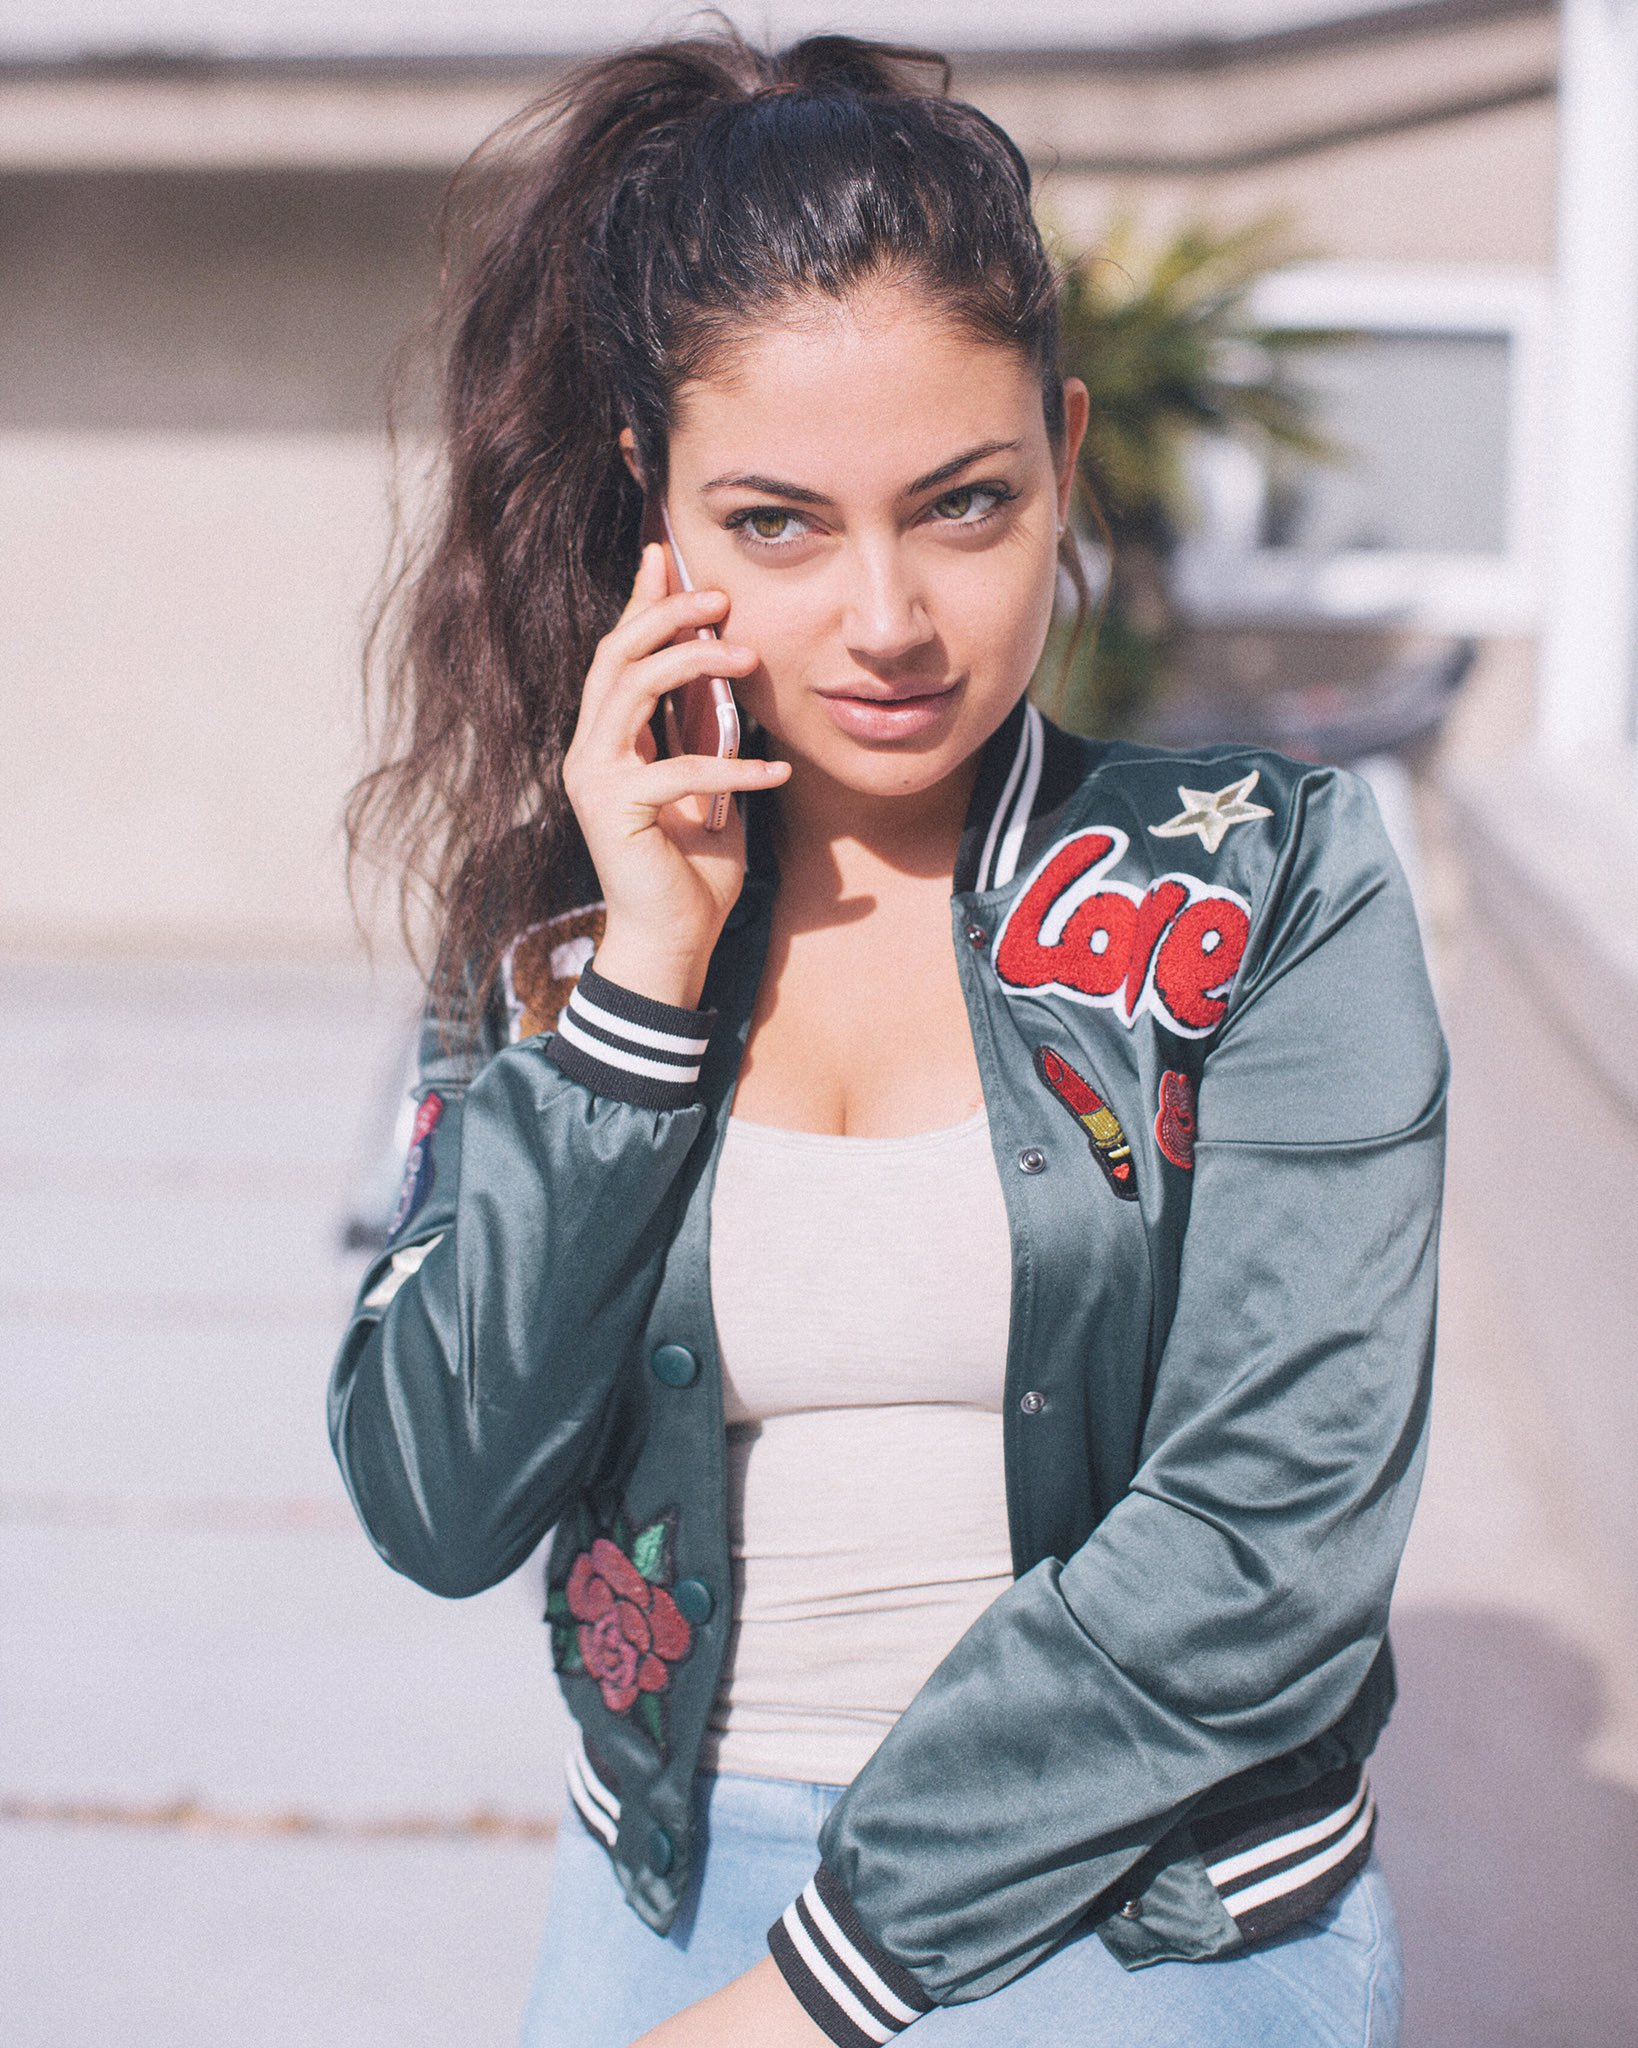 """Inanna Sarkis on Twitter: """"On the phone with my love ..."""